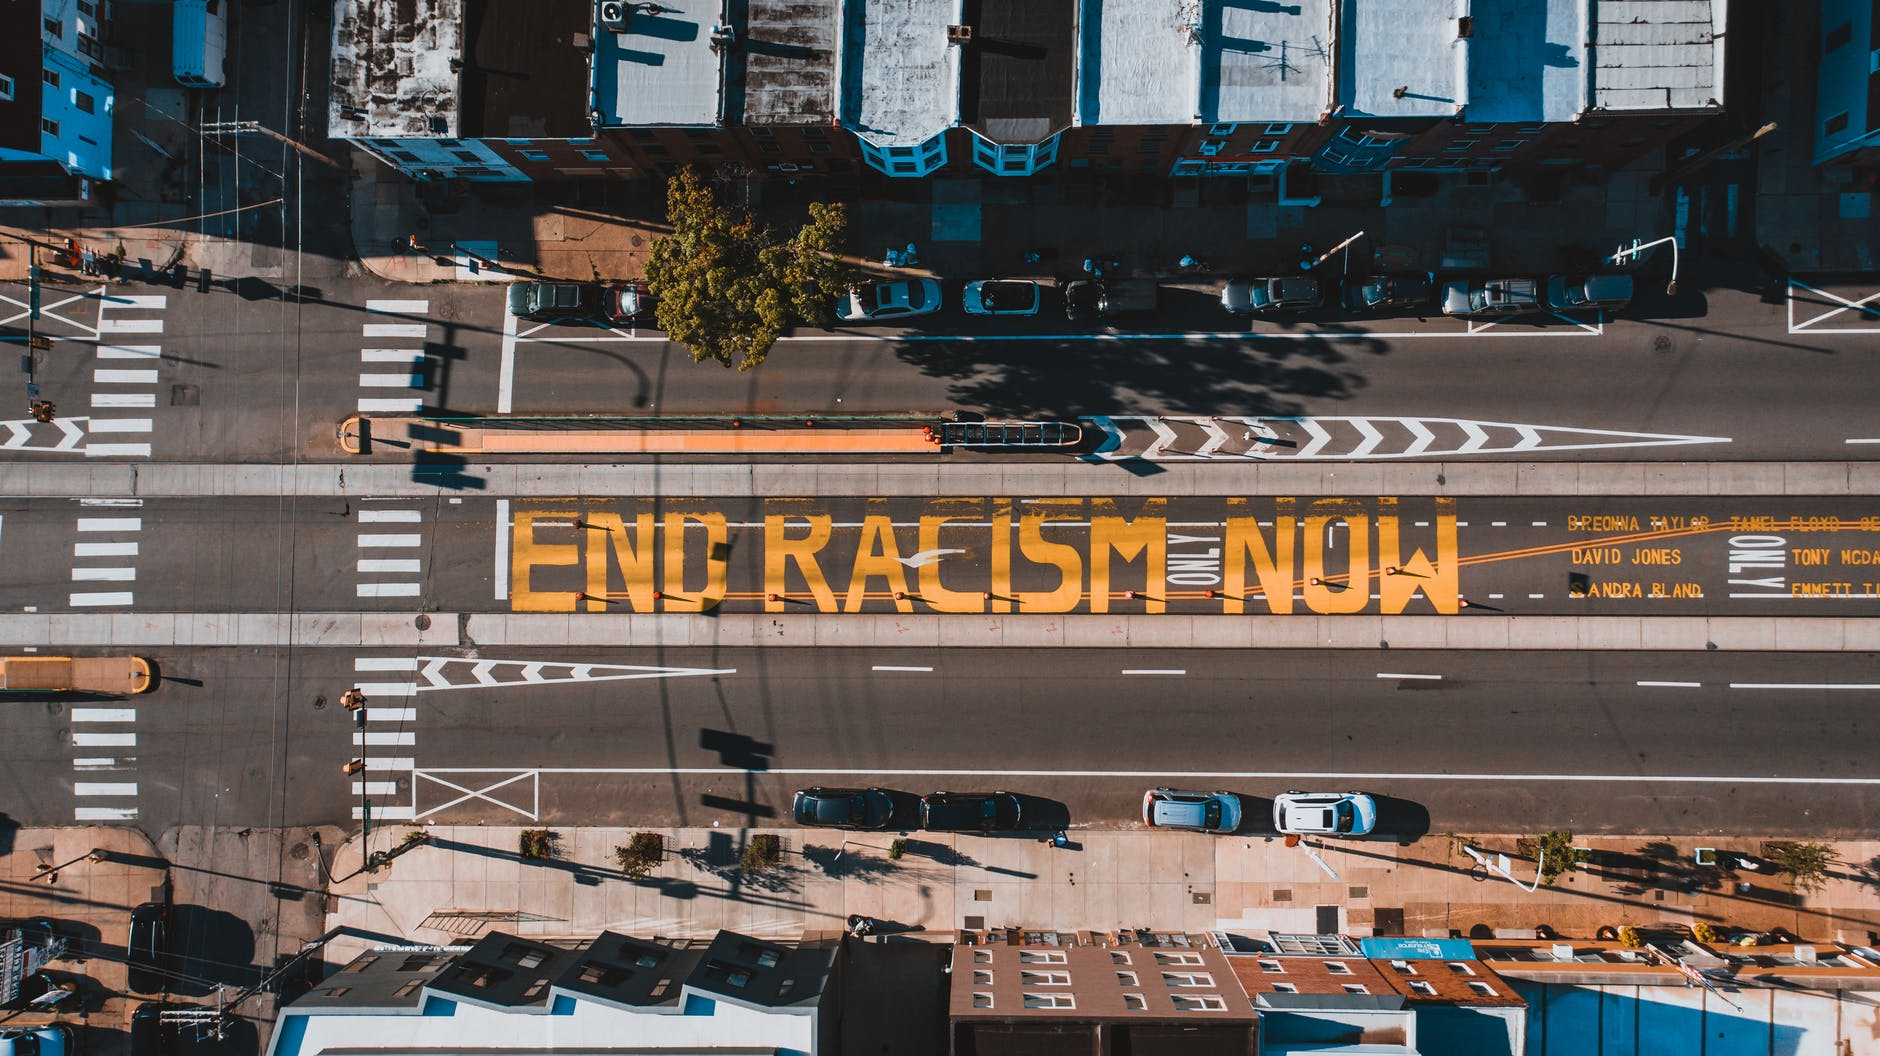 """birds'-eye-view photo of a street with the words """"end racism now"""" painted, in large letters, on it"""